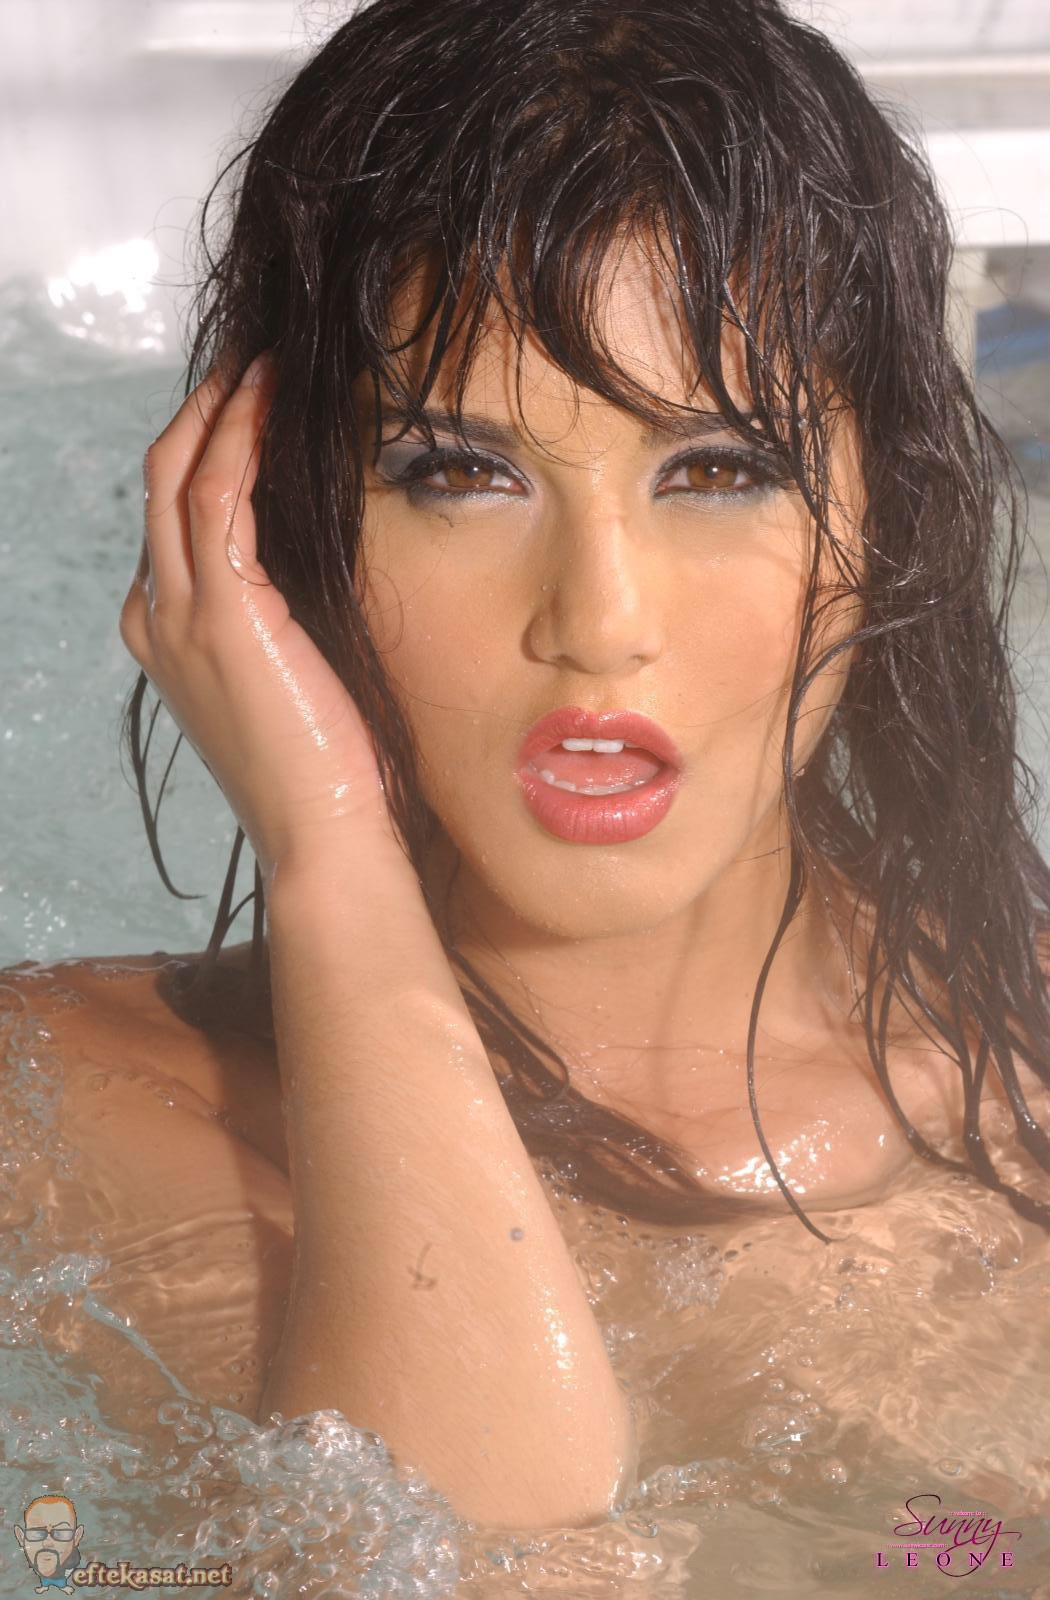 Sunny leone photo blog 2012 hot sunny leone beautiful for Hot images blog